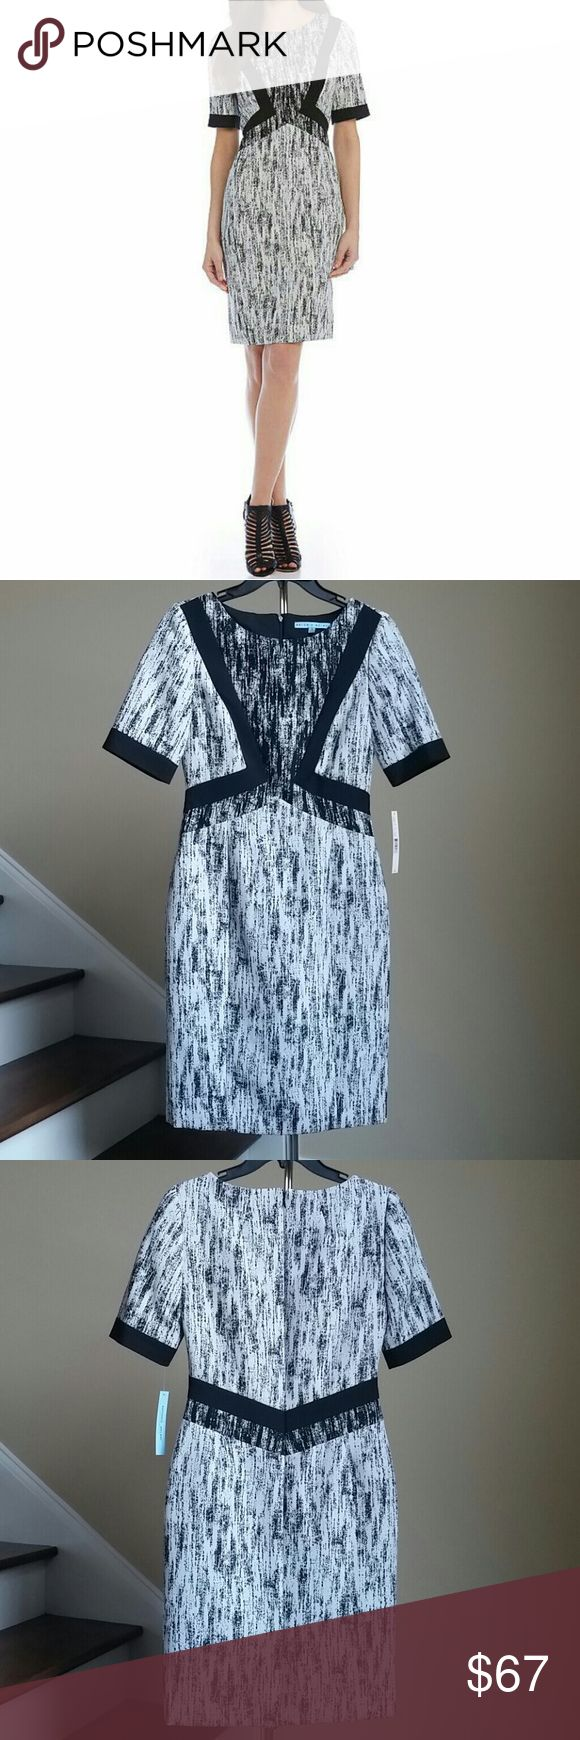 30% OFF BUNDLES BEAUTIFUL ANTONIO MELANI DRESS Beautiful sheath dress from Antonio Melani. Features short sleeves, concealed back zipper closure, lined. Shell and lining100% Polyester. Combo: 53%Cotton, 44%Polyester, 3% Elastane. Bundle discount does not apply to items marked on sale! ANTONIO MELANI Dresses